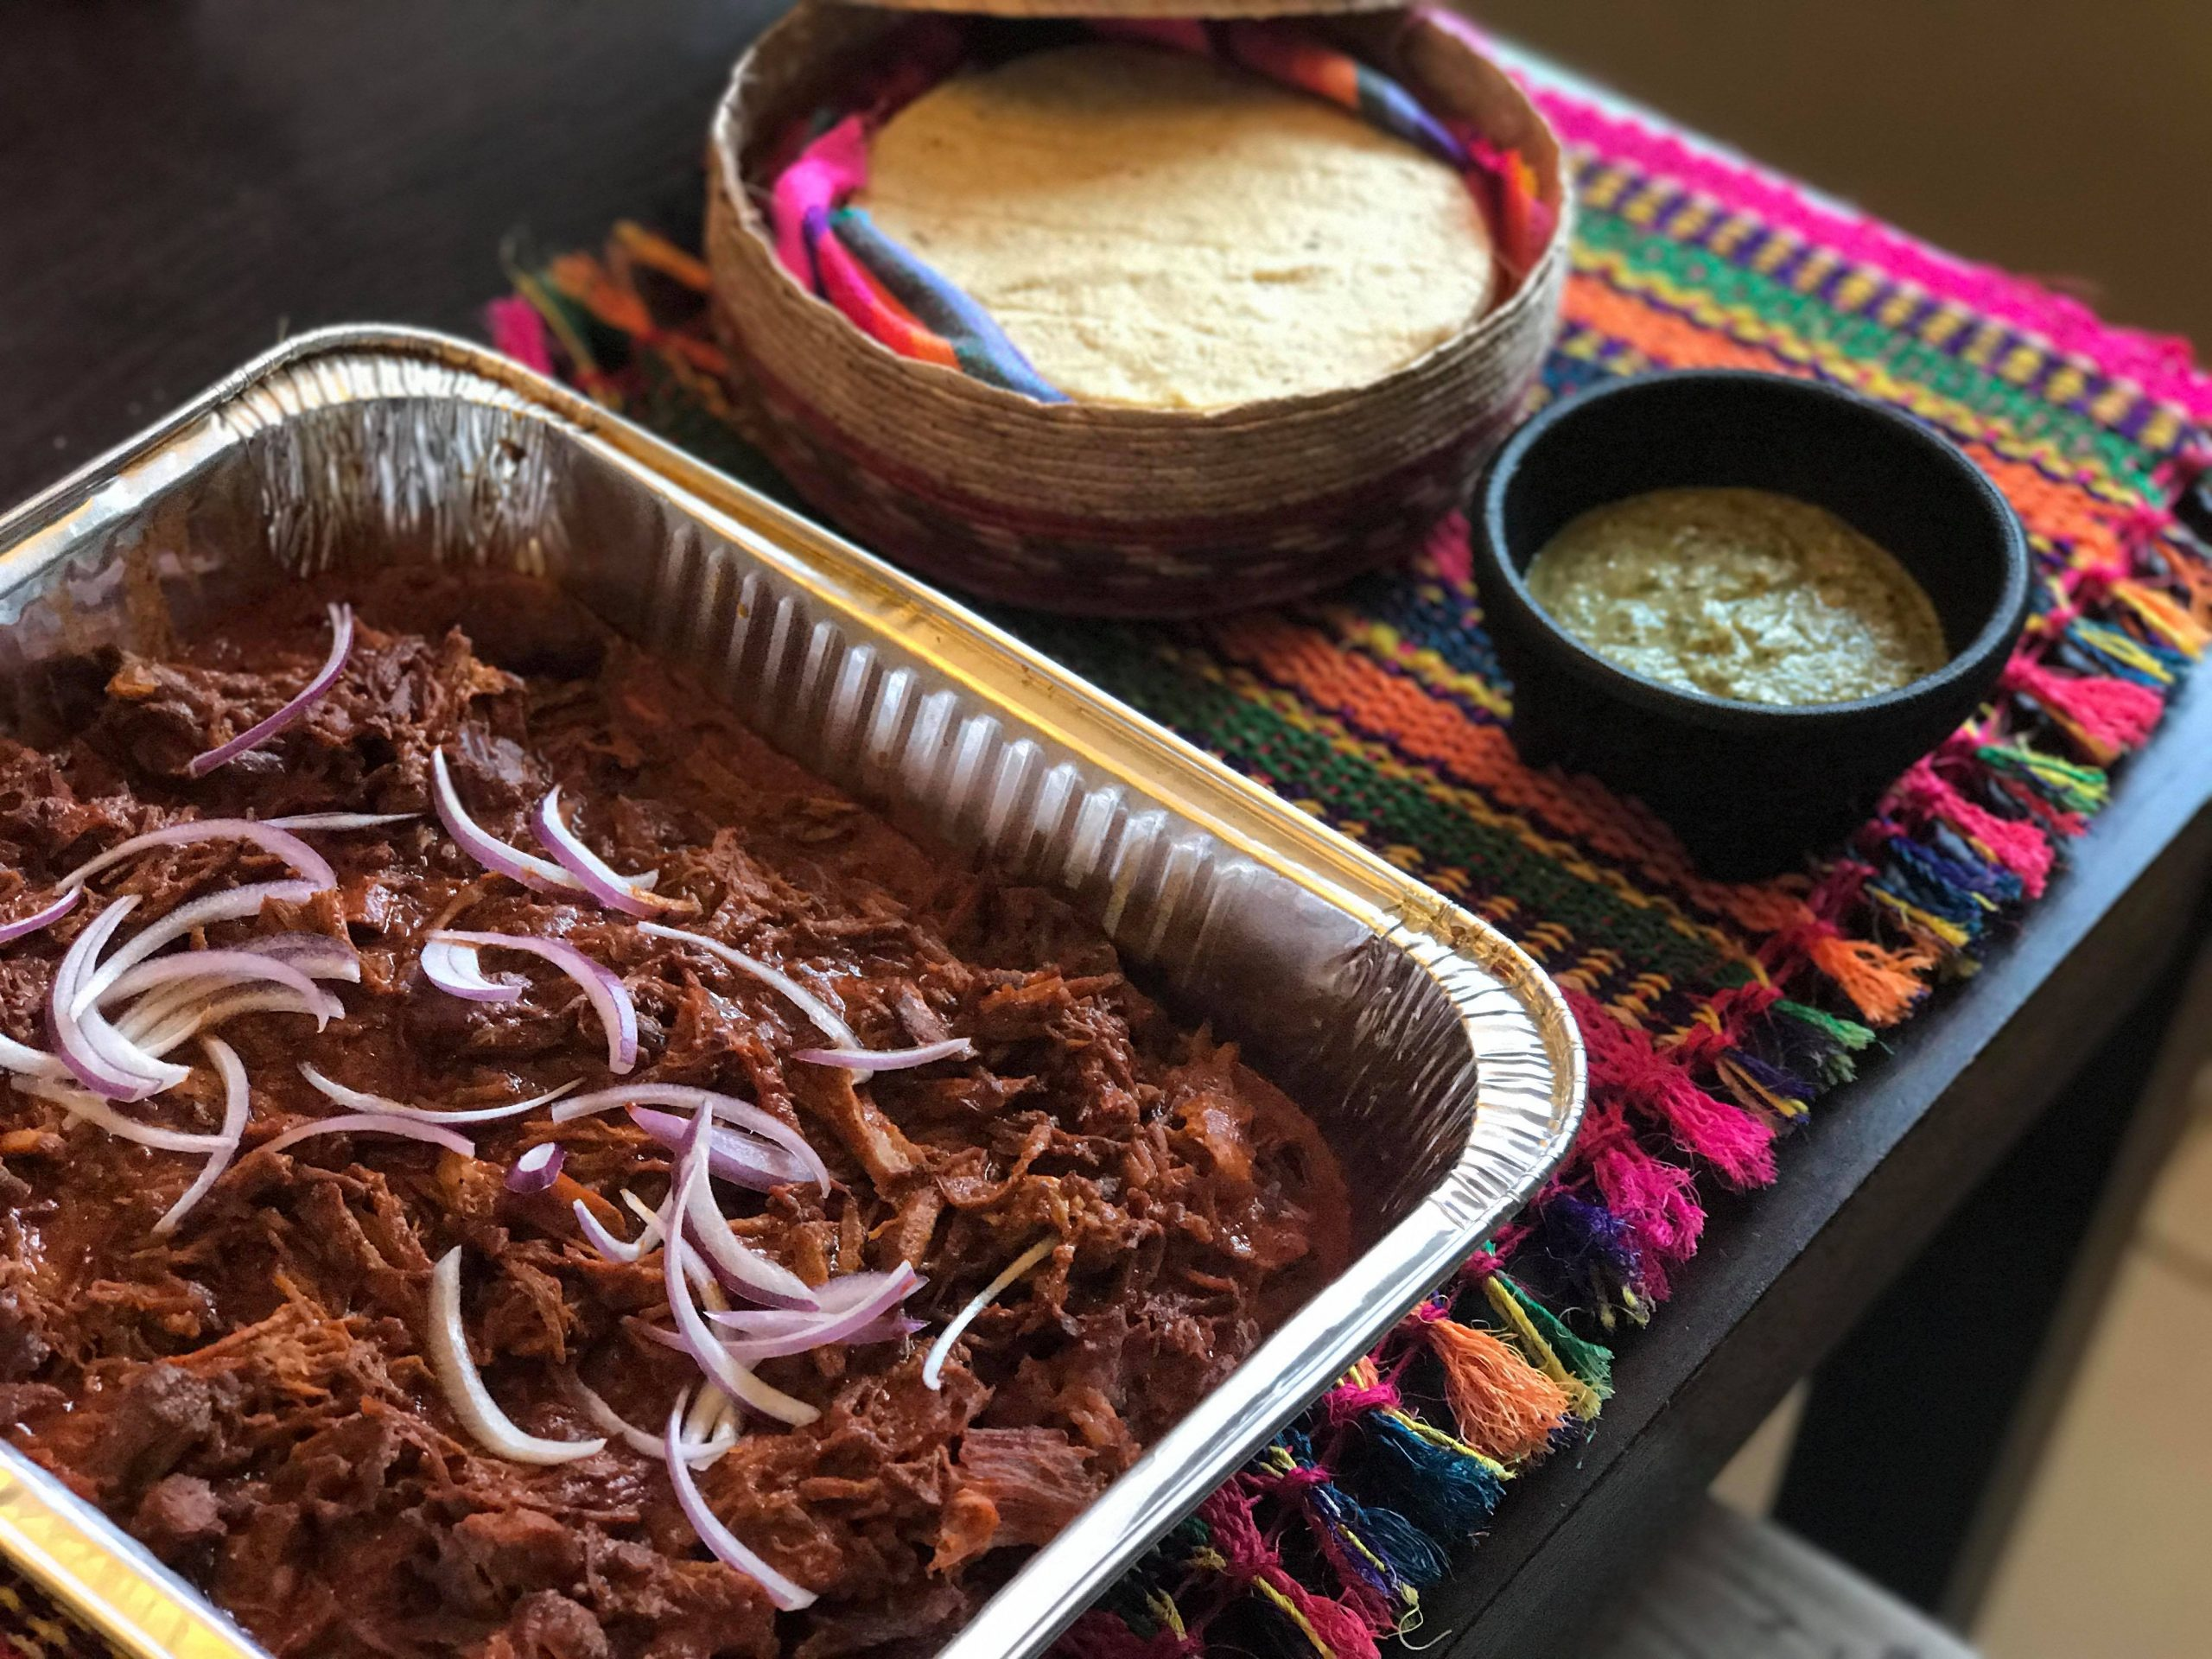 Cochinita pibil tray at Cochinita & Co